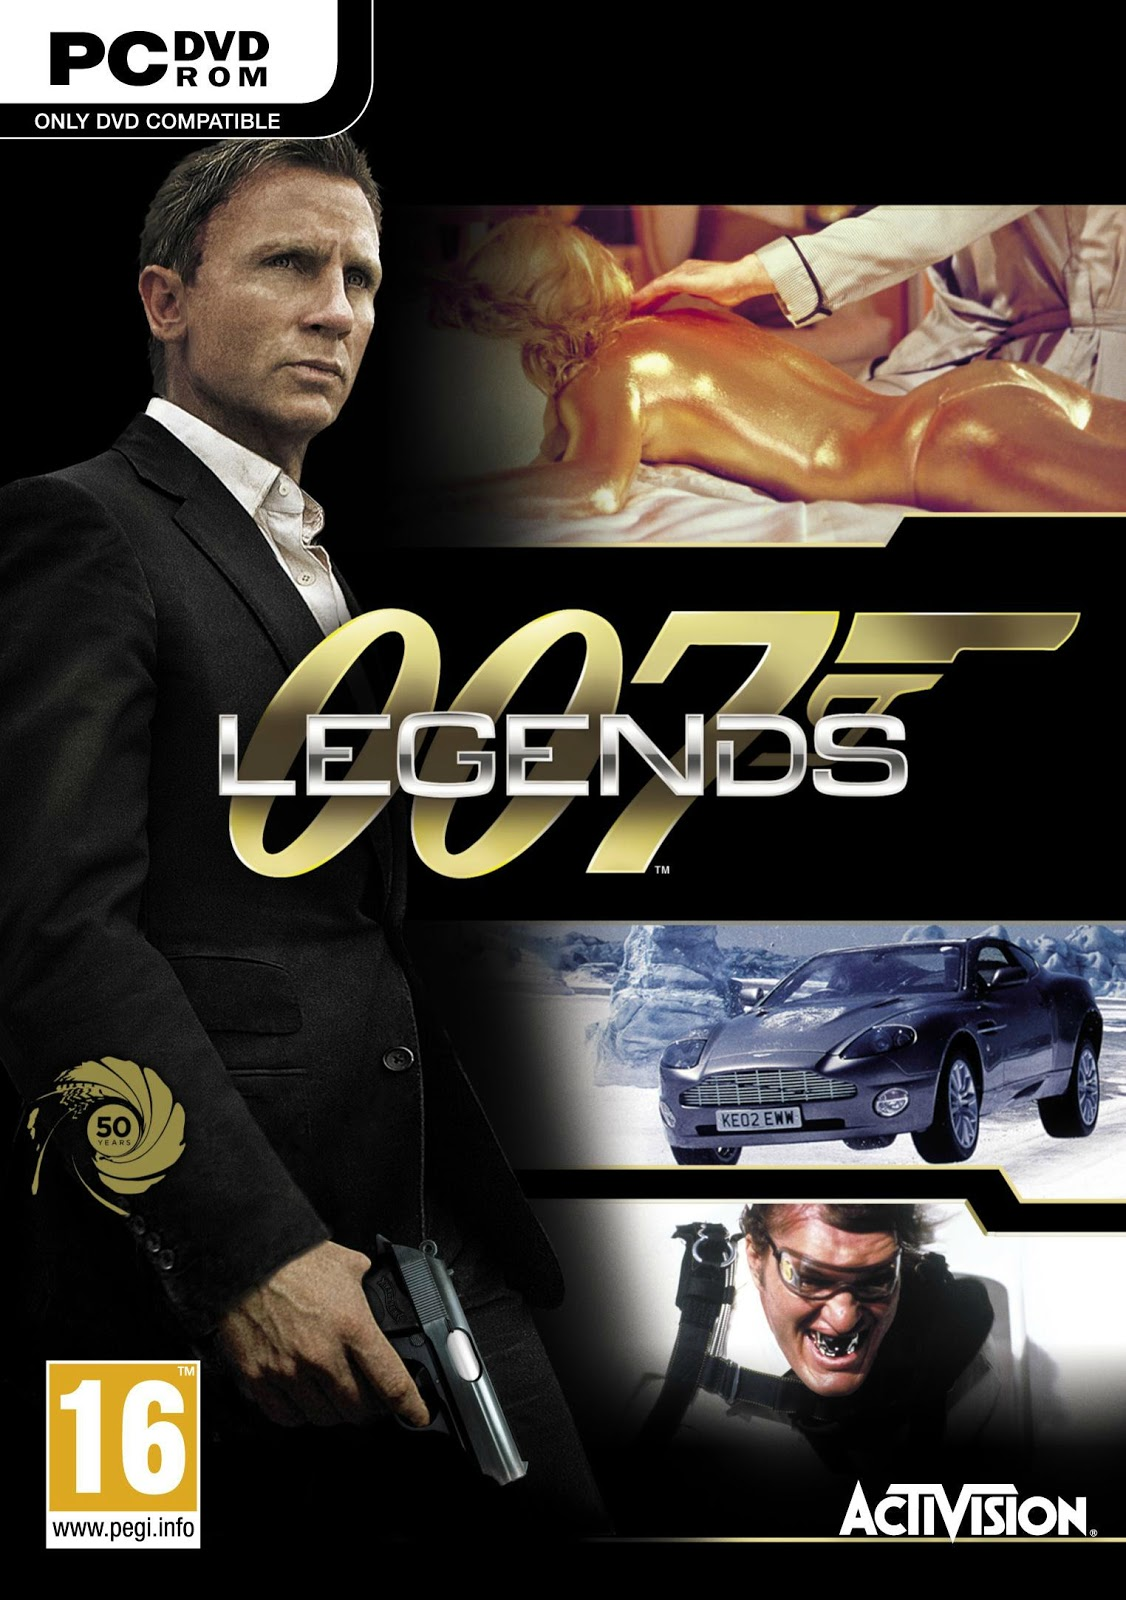 james bond 007 legends pc game free download full version